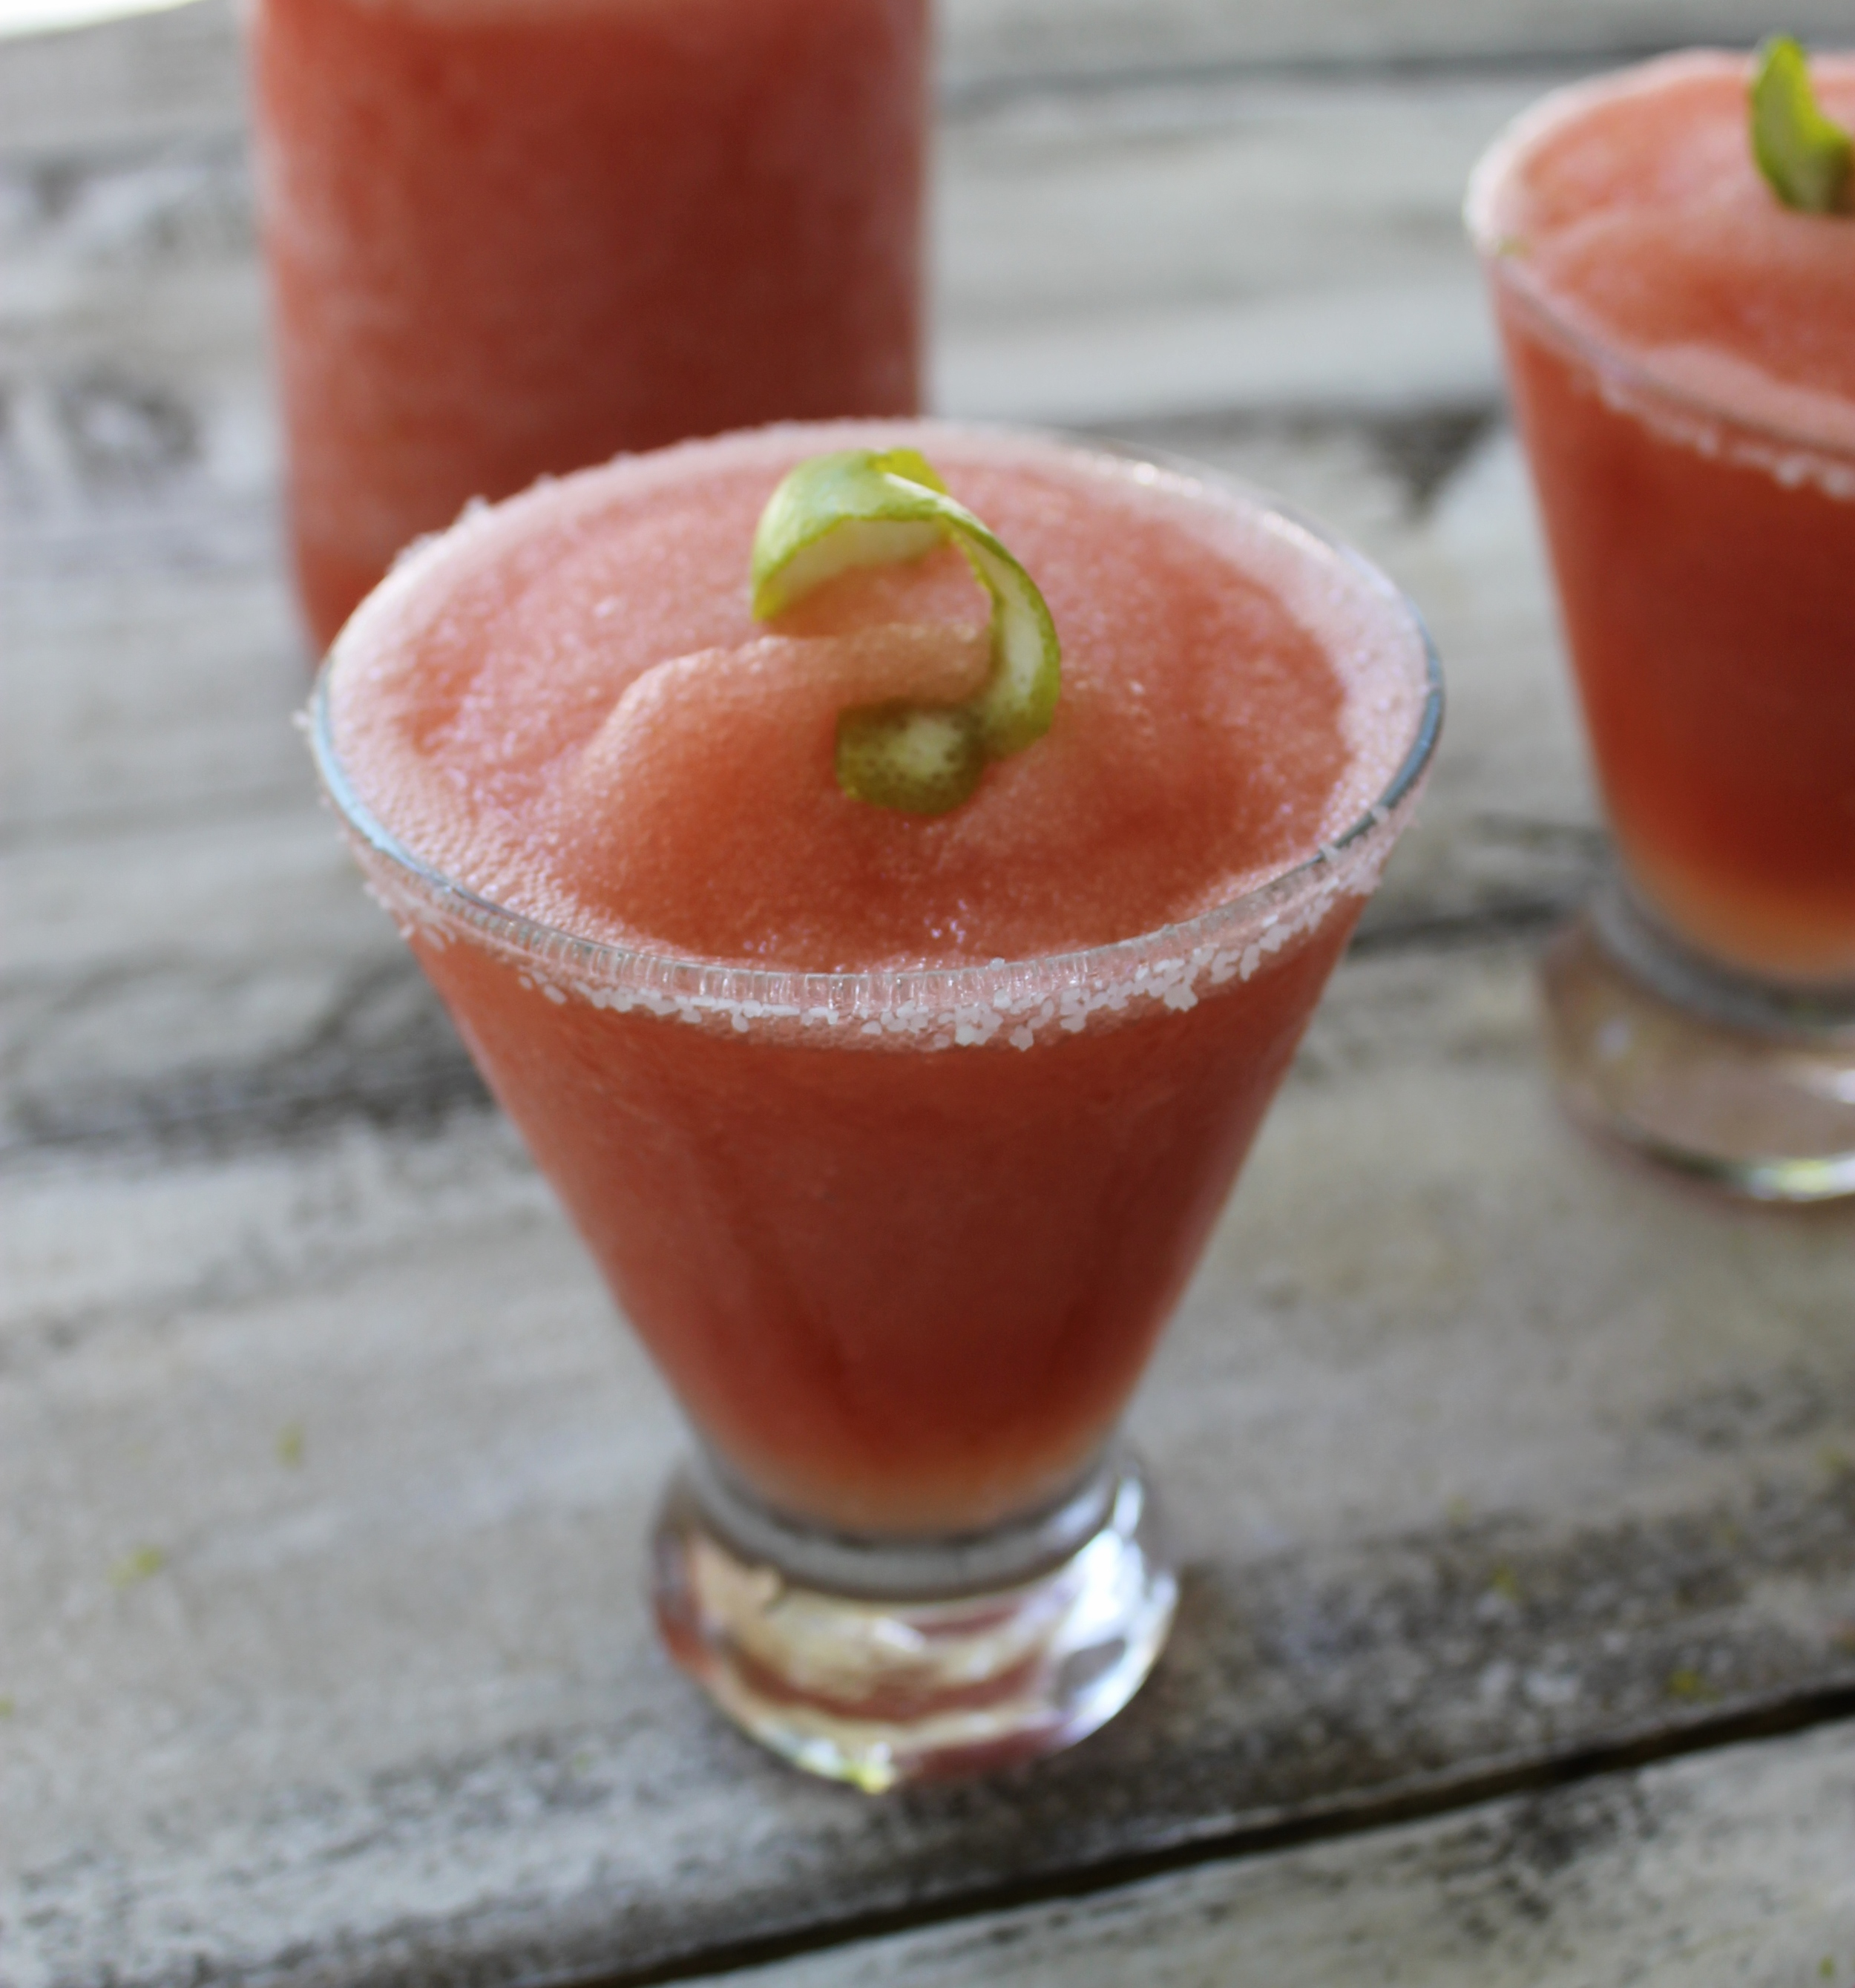 http://mydiaryofus.com/blog/2014/7/18/frosty-watermelon-margaritas